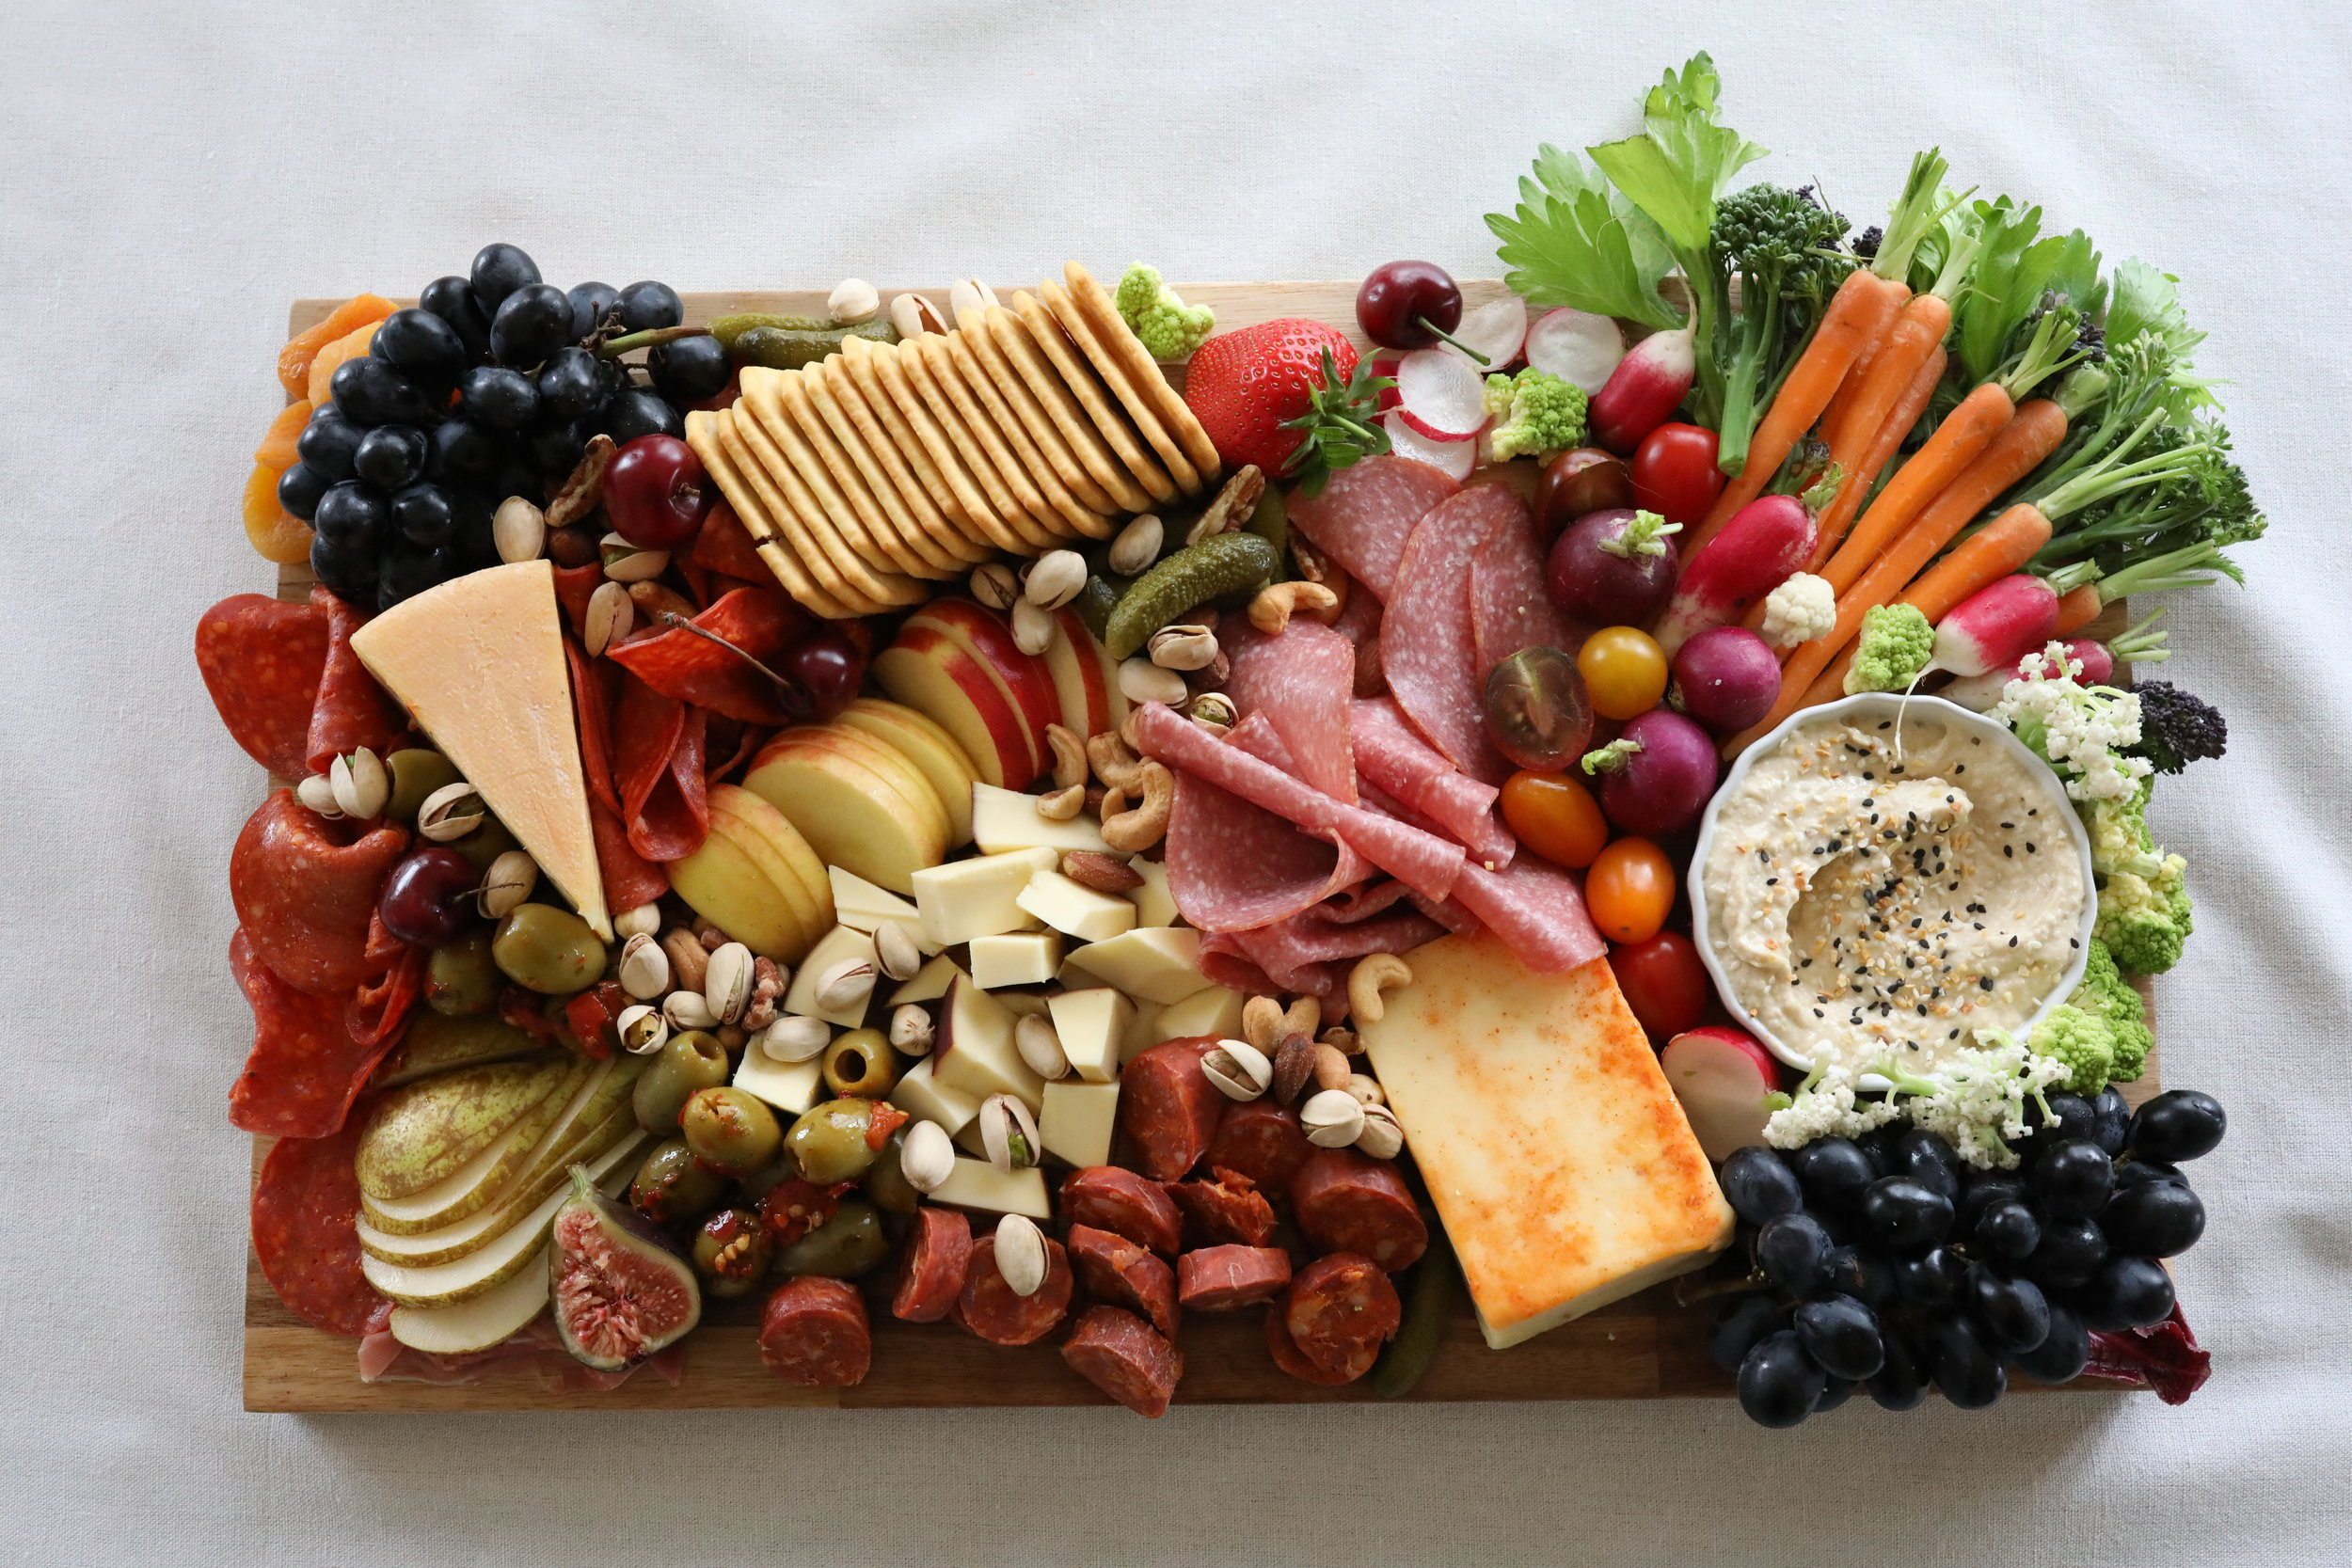 A LITTLE OF EVERYTHING BOARD WITH HUMMUS